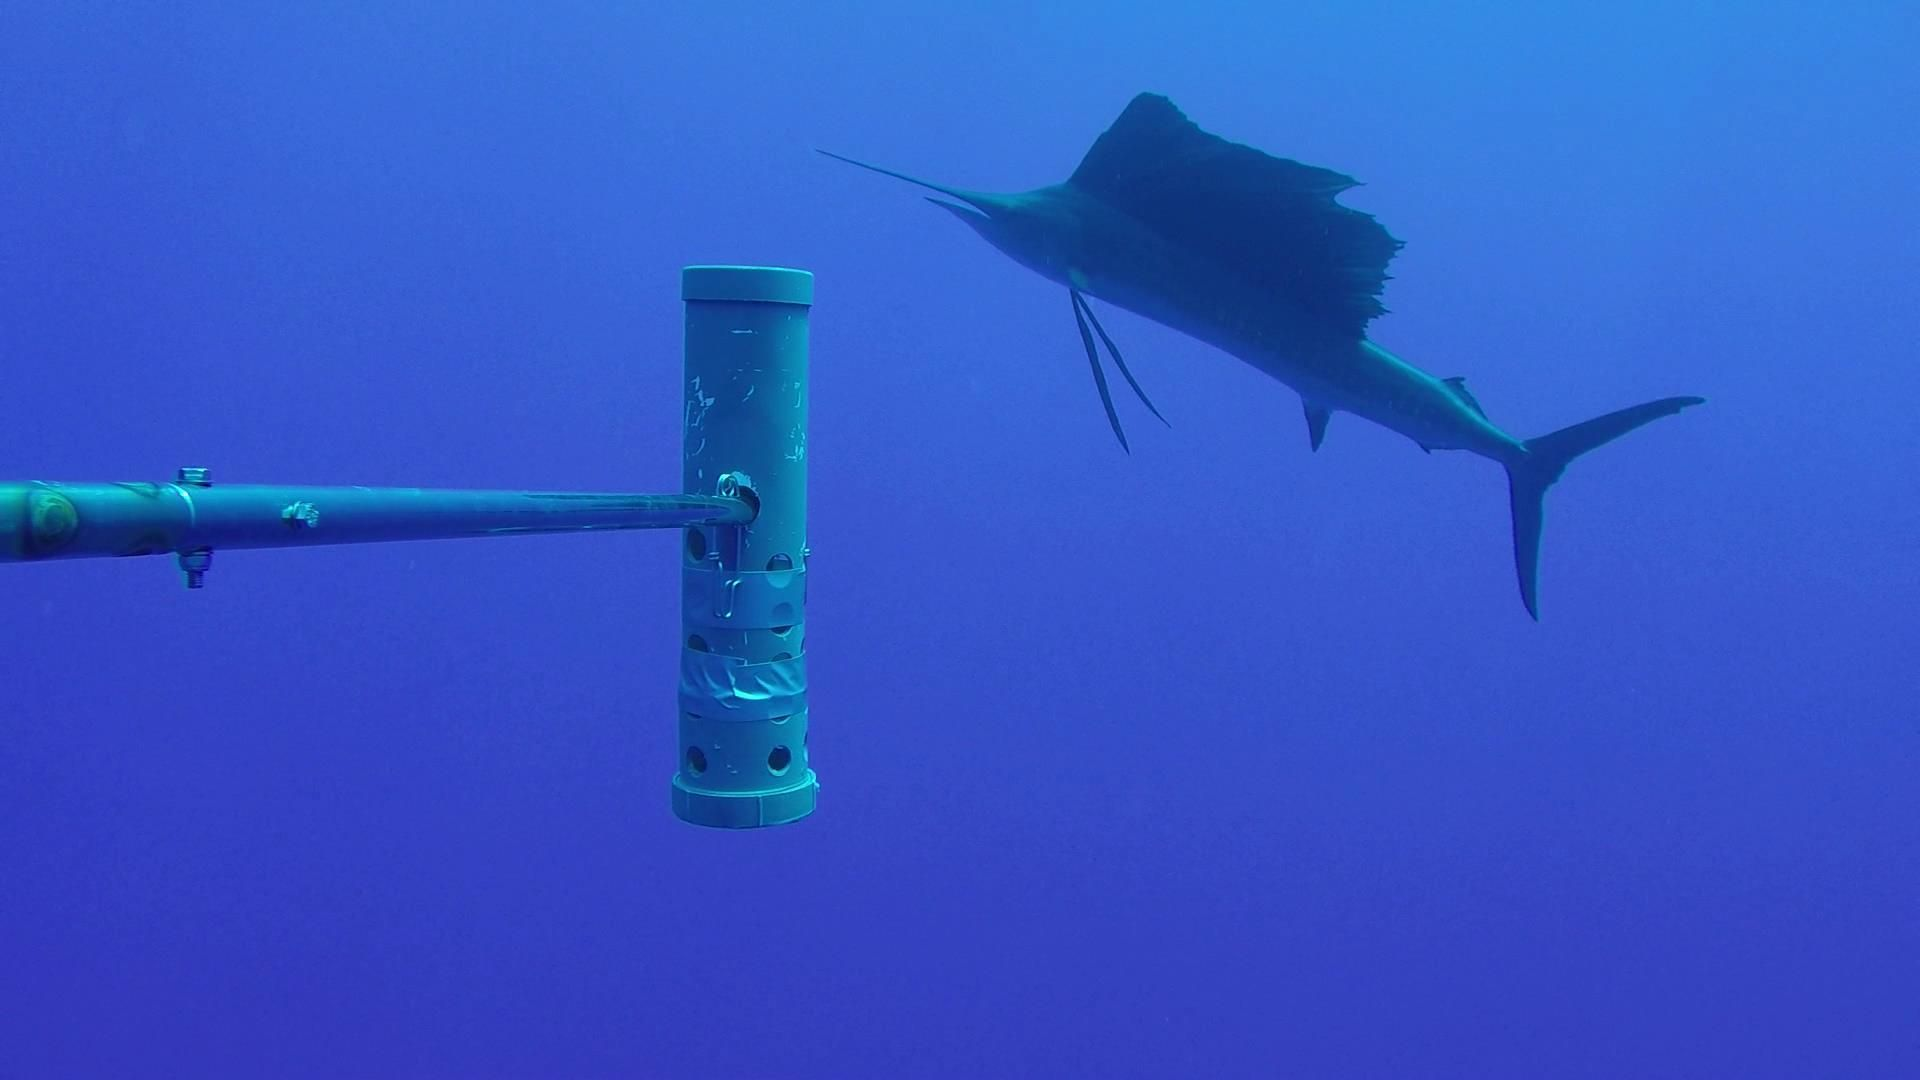 An Atlantic sailfish captured by one of the underwater camera systems.